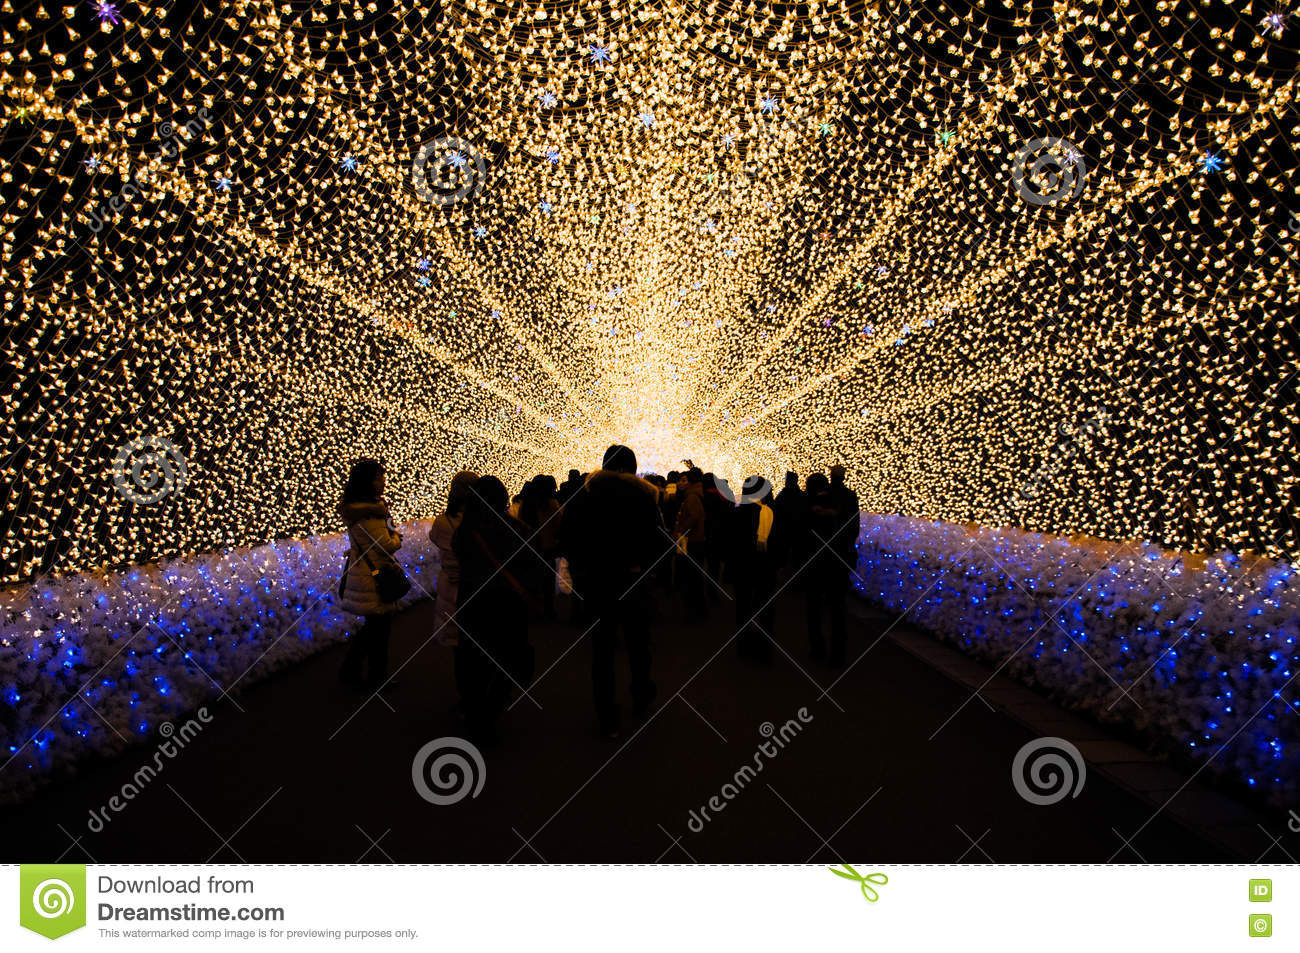 Watch Nabana No Sato: Inside Japans Most Mind-Blowing Light Show video